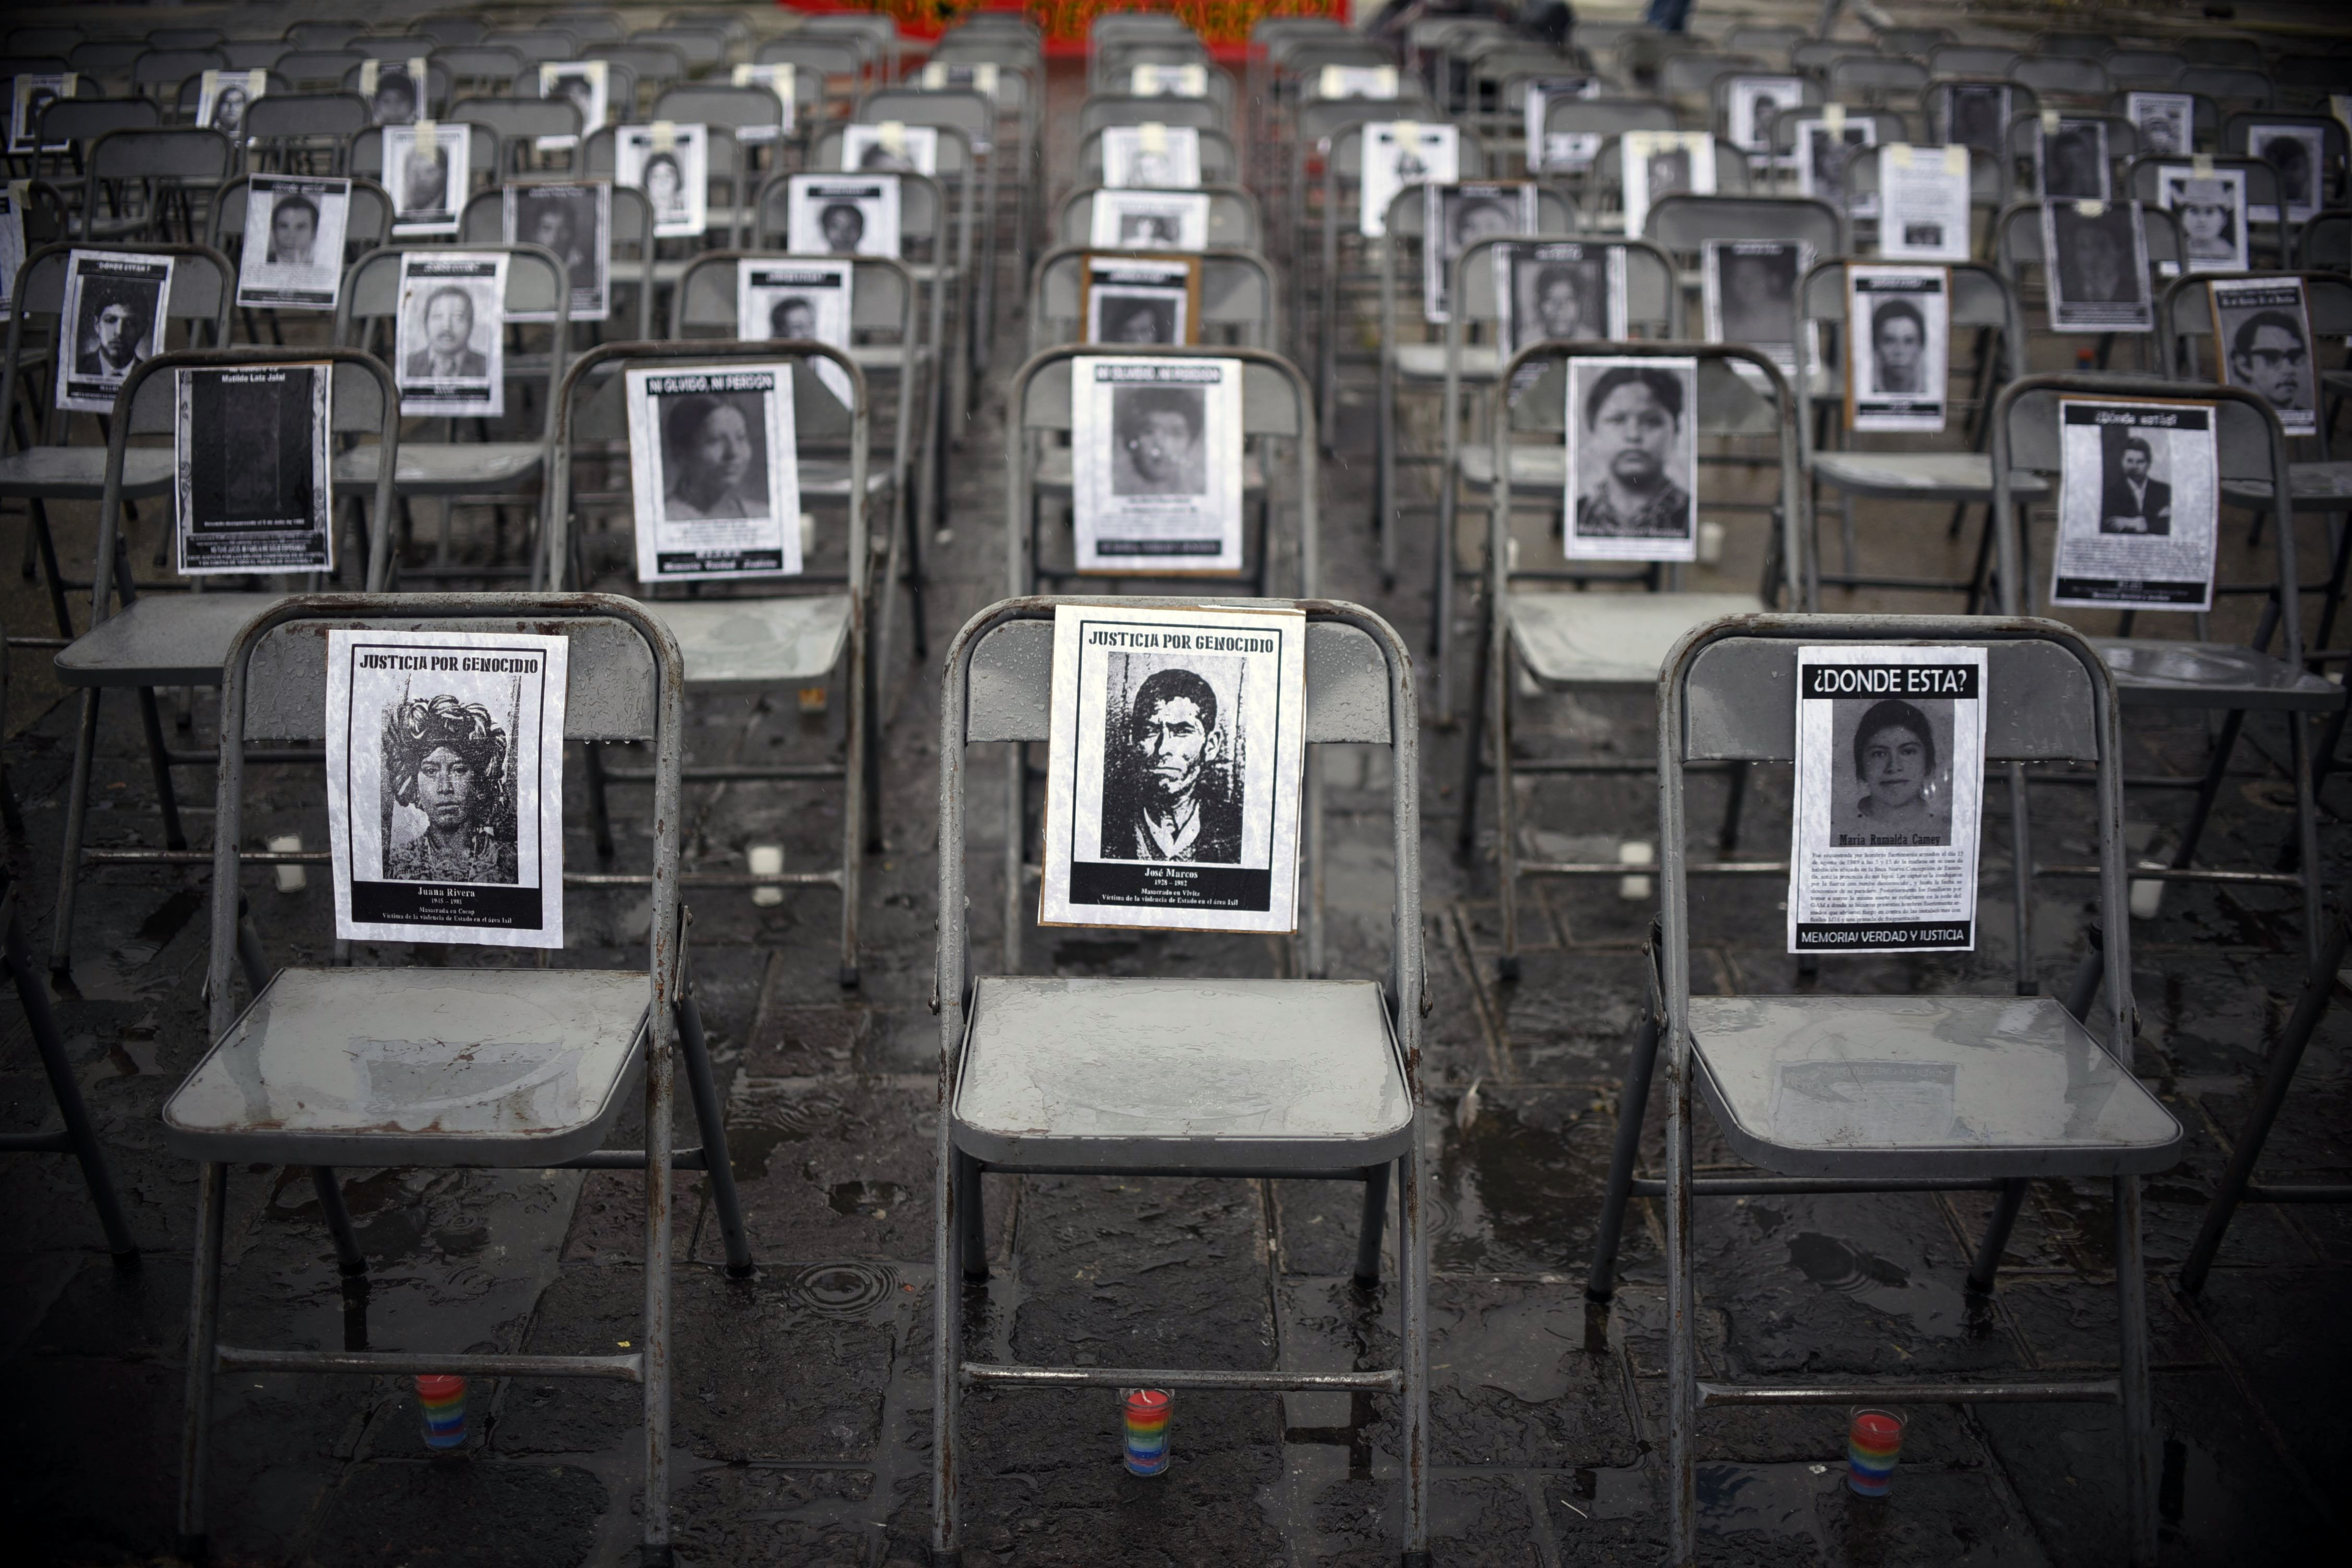 TOPSHOT - Portraits of victims of forced disappearance hang on empty chairs during the ceremony to commemorate the National Day of the Victims of Enforced Disappearances at Constitution Square in Guatemala City on June 21, 2017. / AFP PHOTO / JOHAN ORDONEZ / TT / kod 444